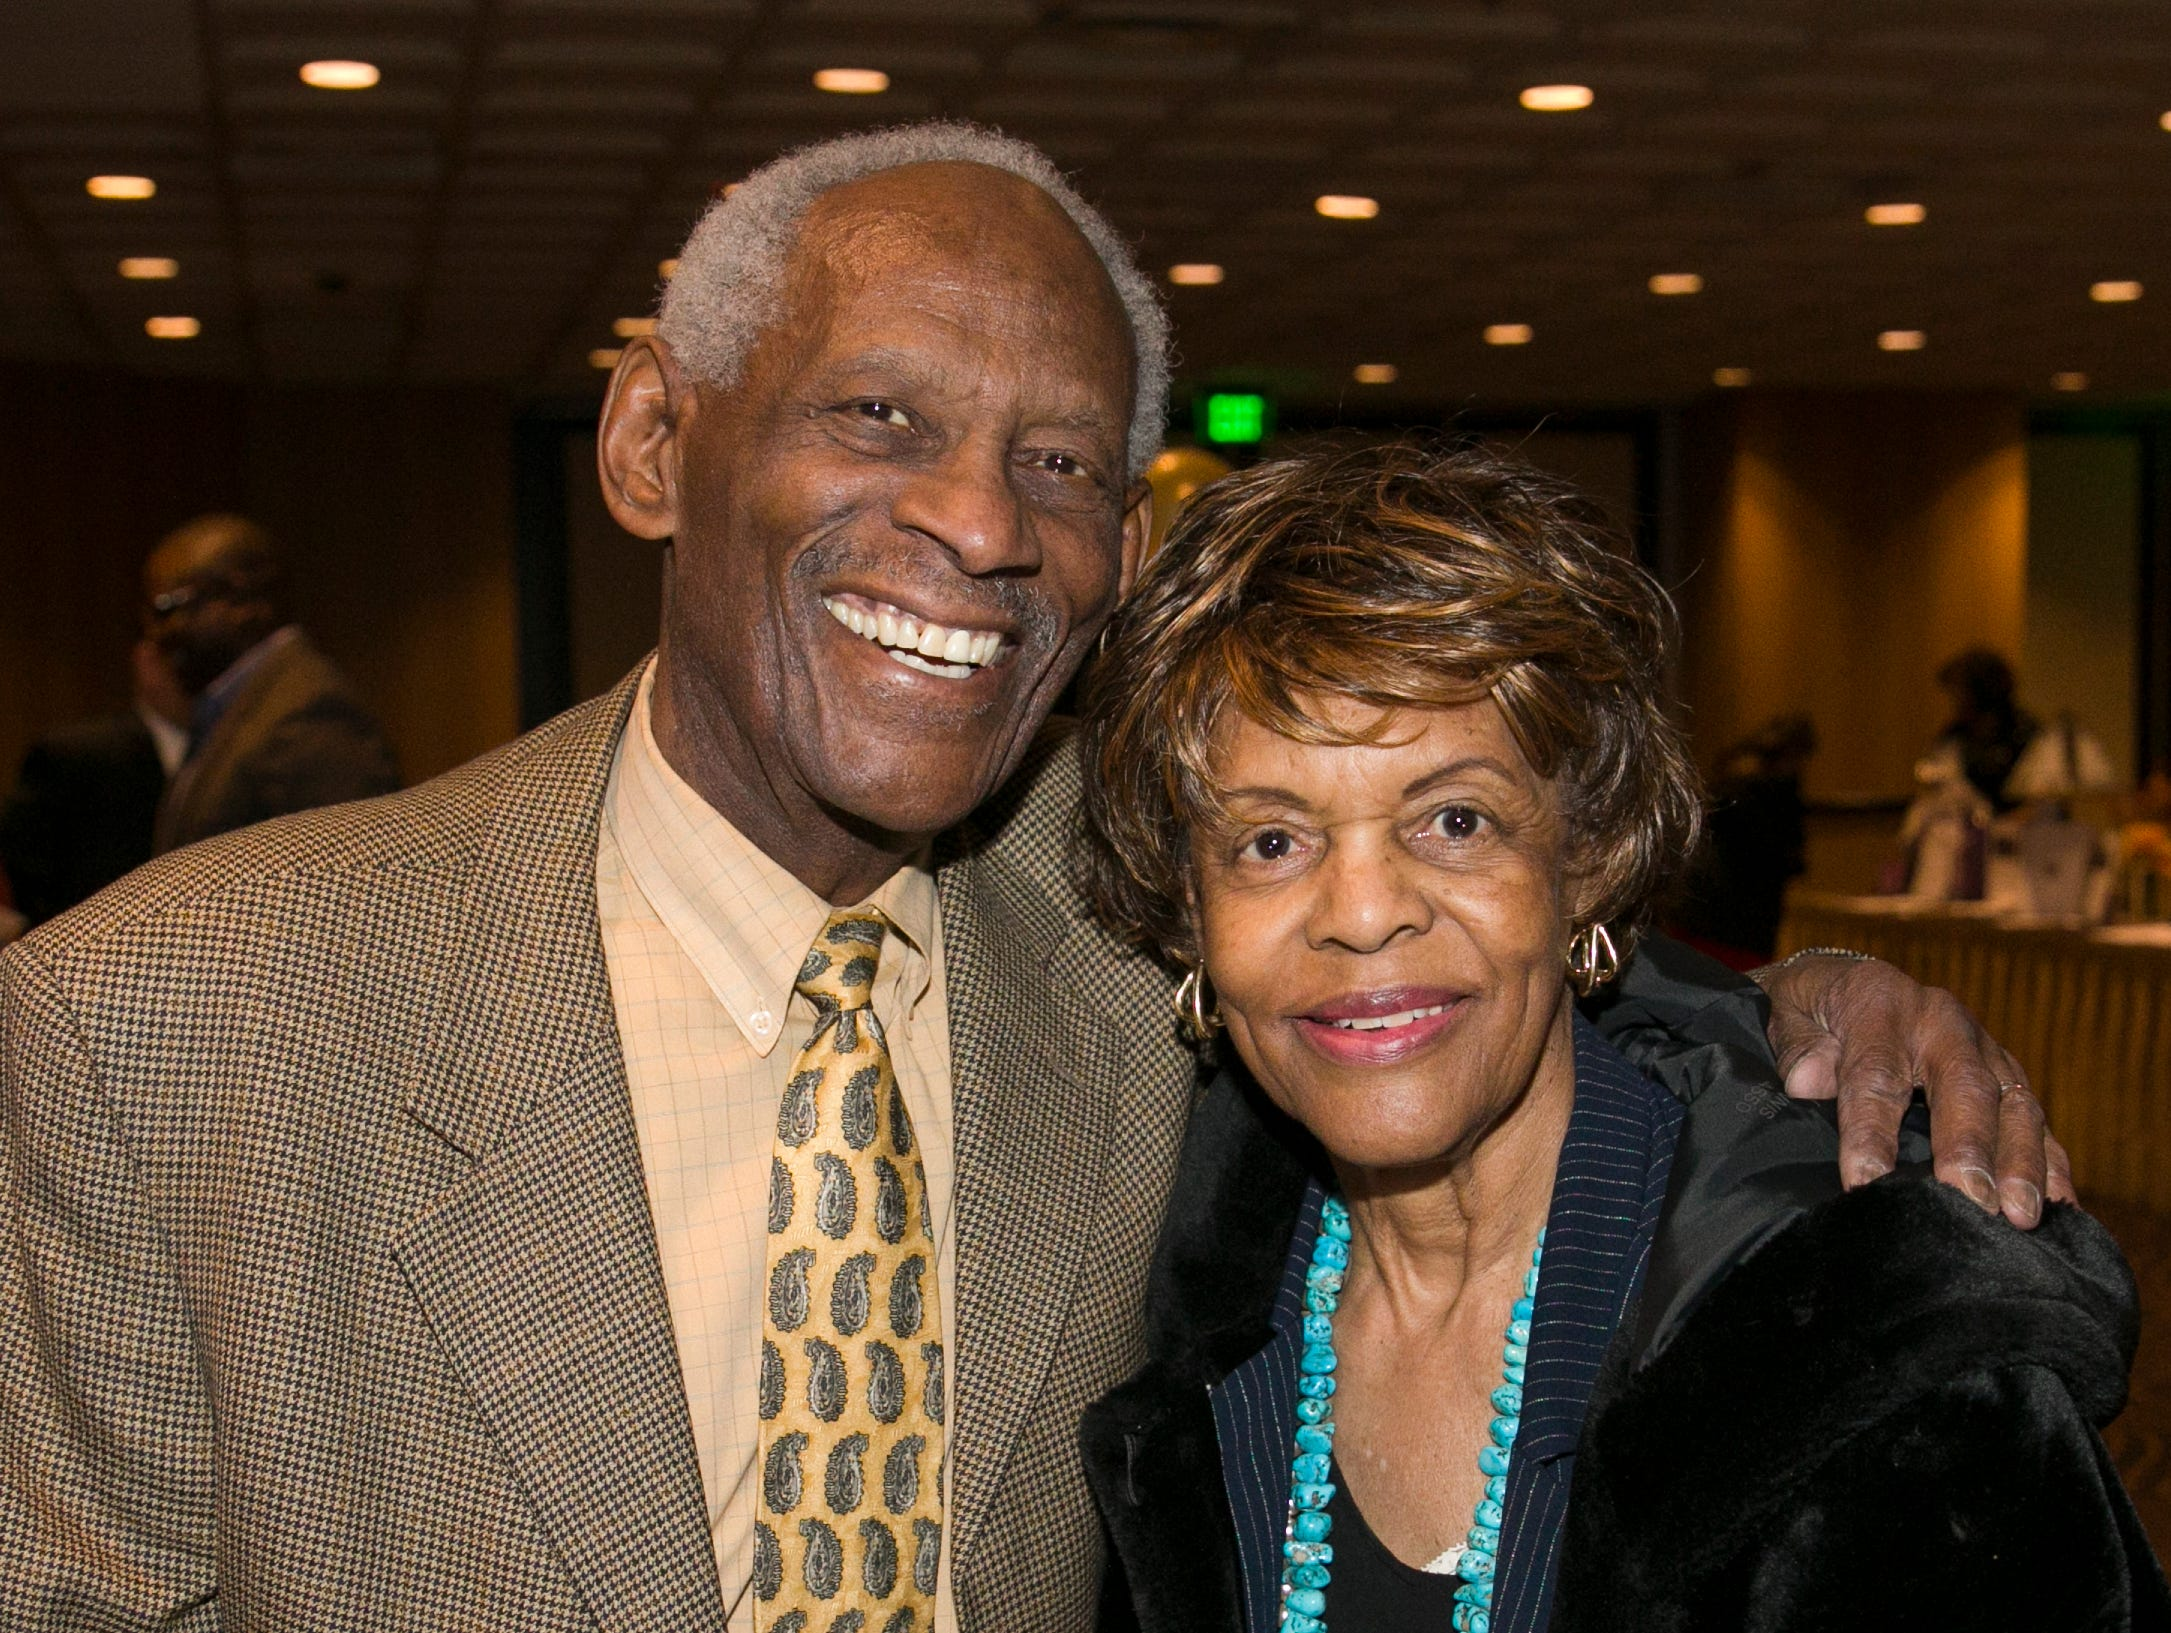 A photograph taken during the 31st Annual Martin Luther King, Jr. Birthday Celebration Dinner at the Atlantis Casino Resort Spa on Monday, January 21, 2109 in Reno, Nevada.